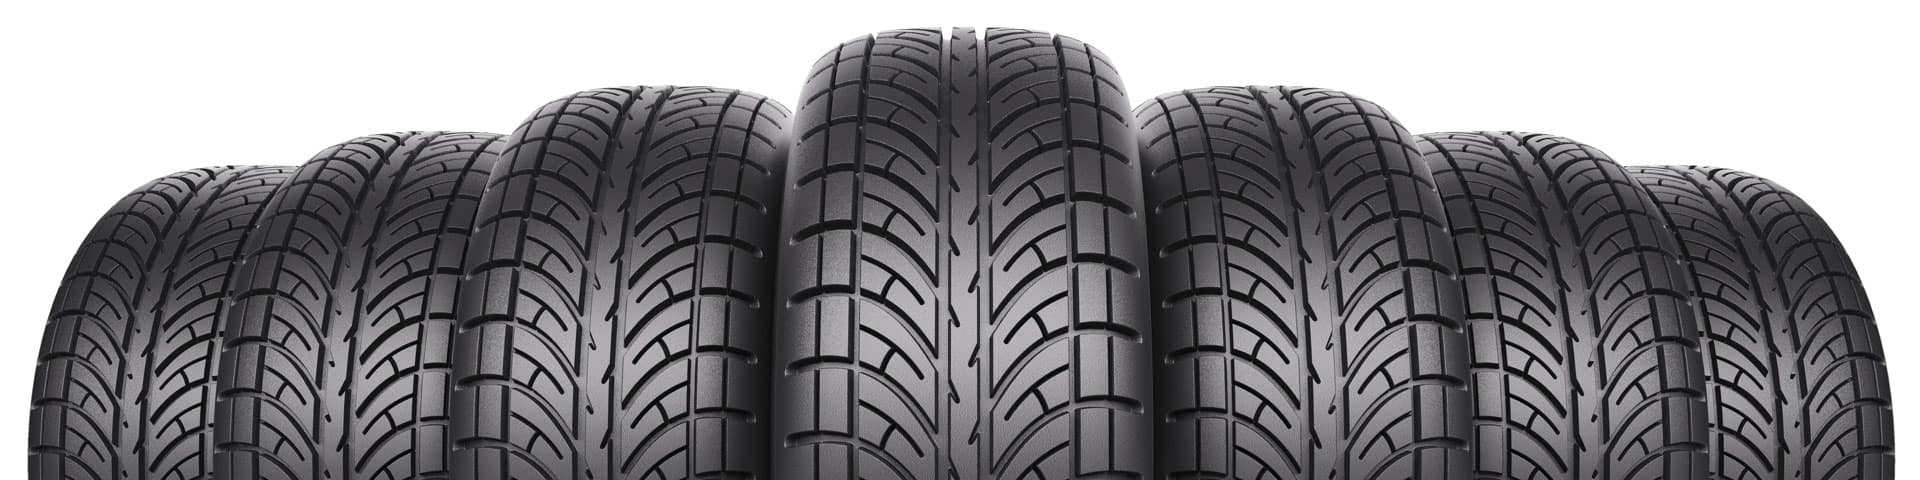 Tire Service in West Covina